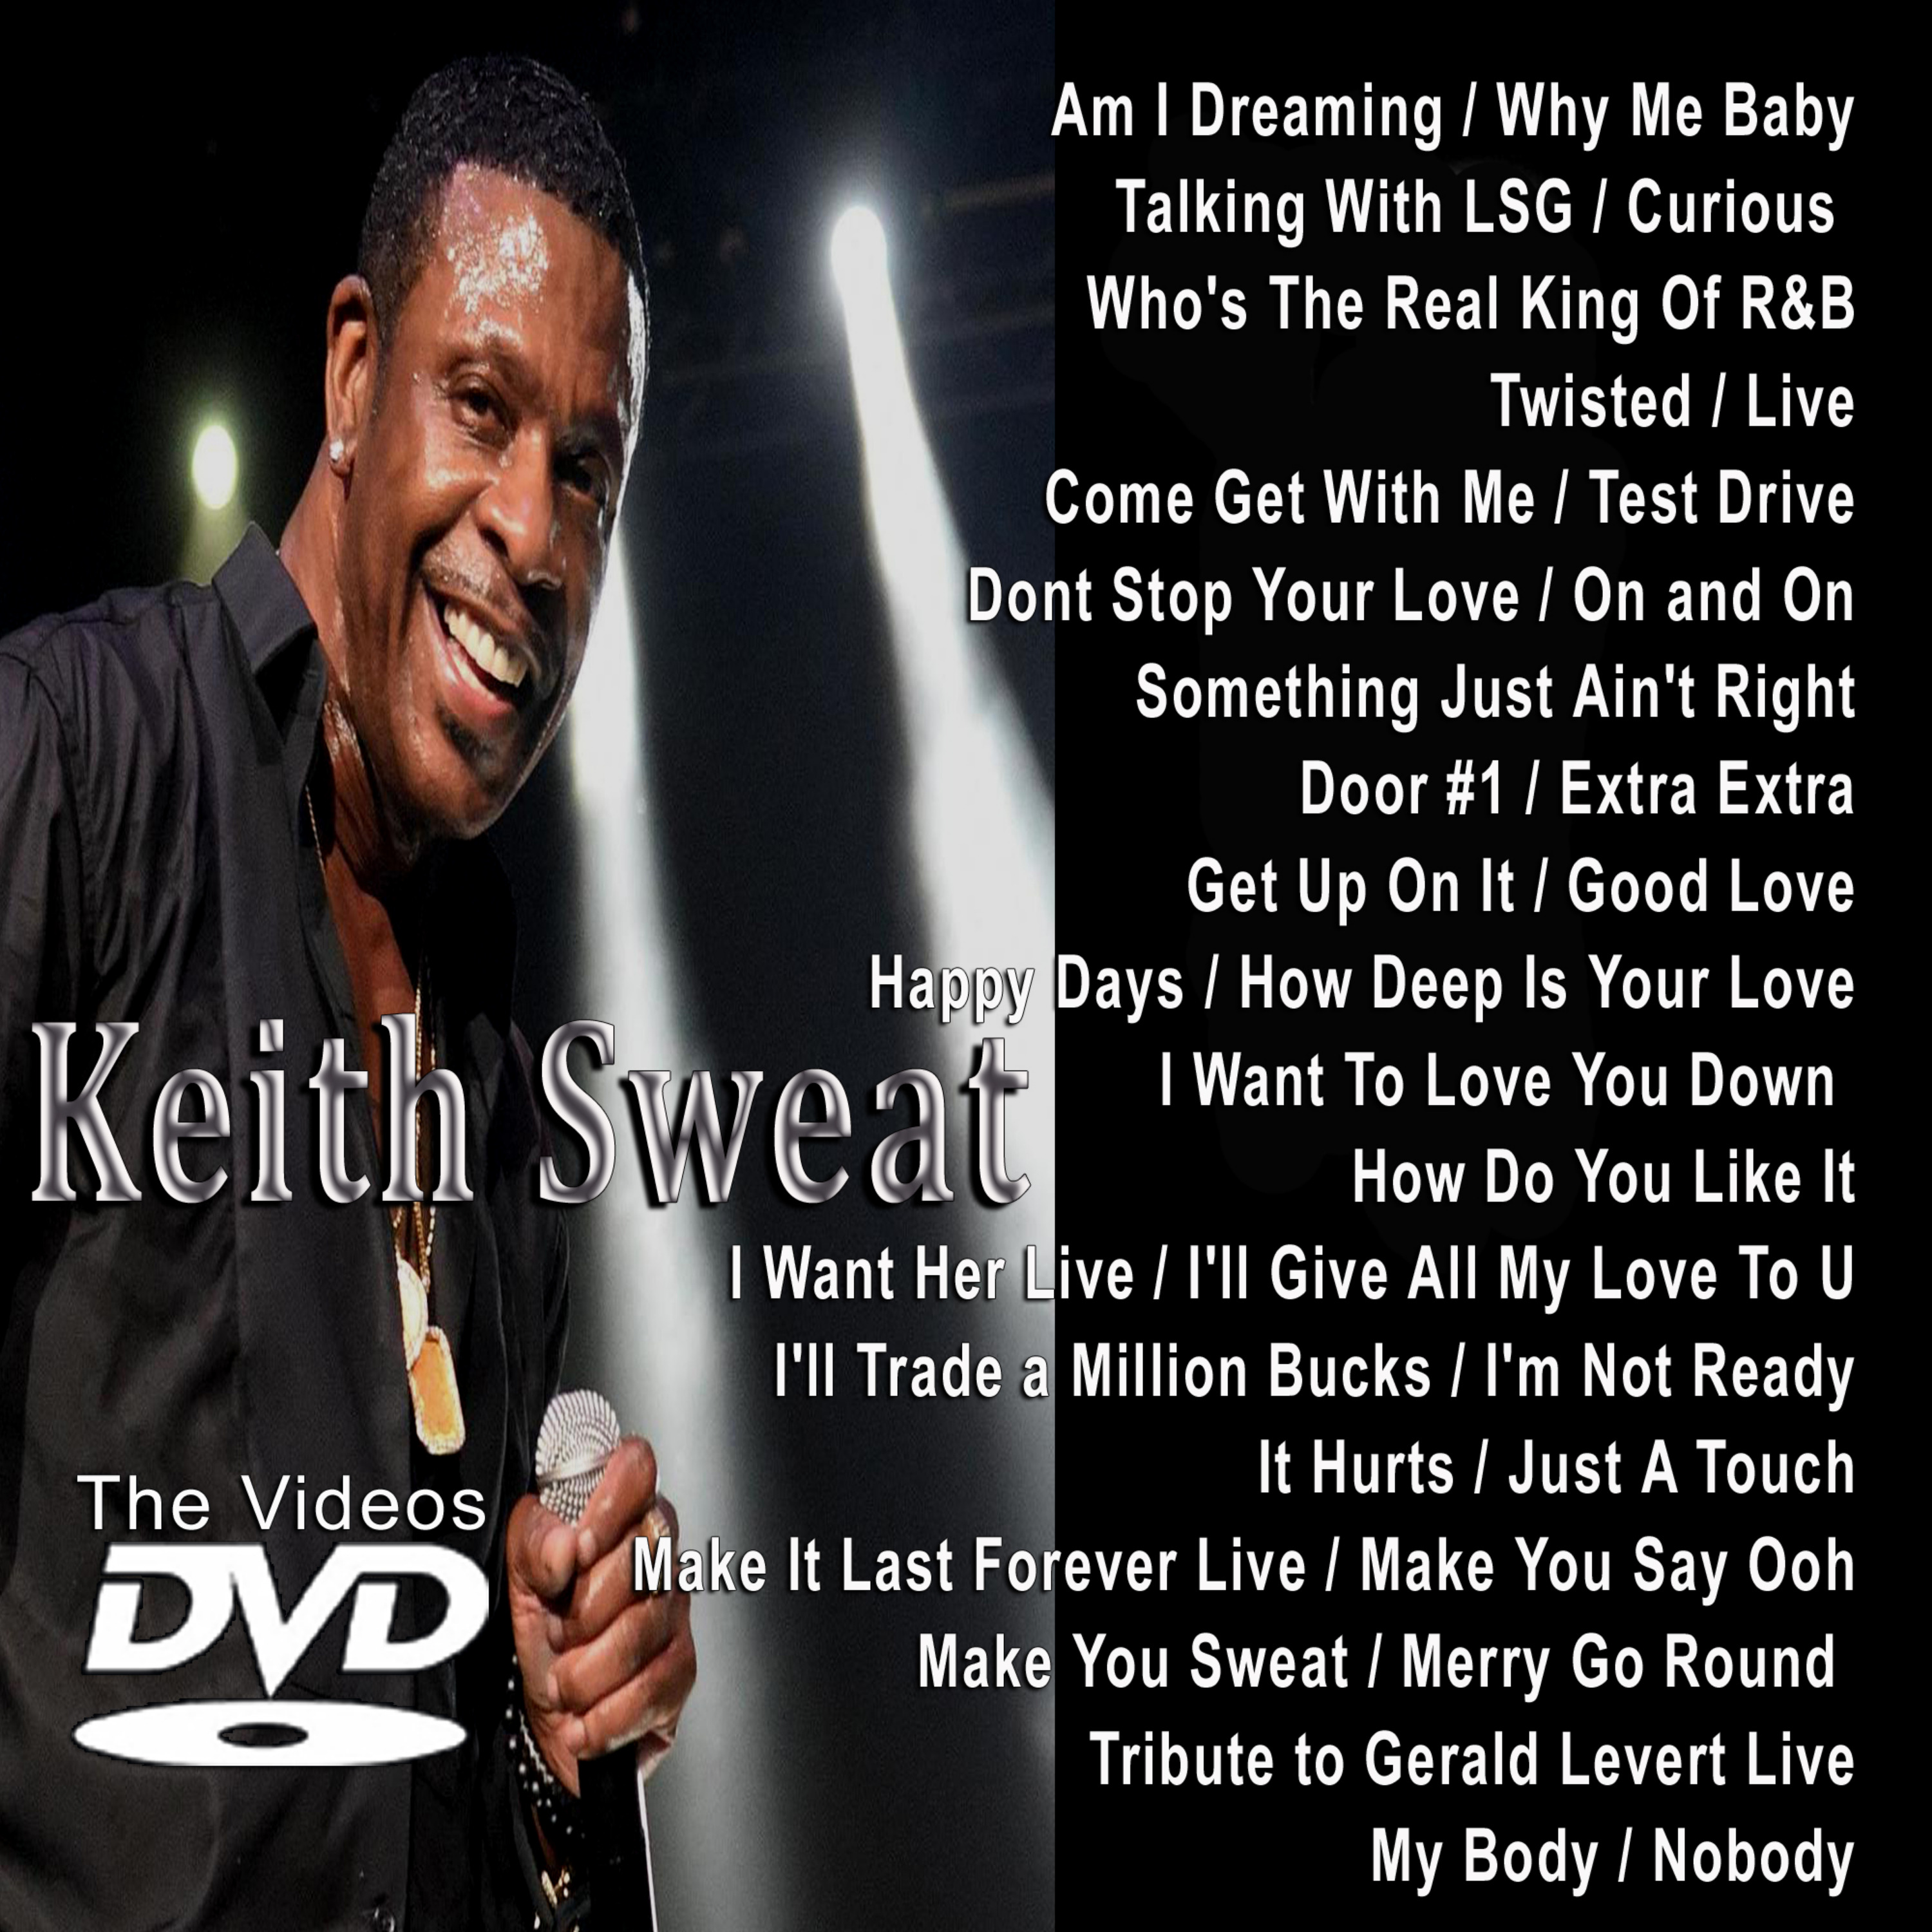 KEITH SWEAT Video Mix Videos MP4